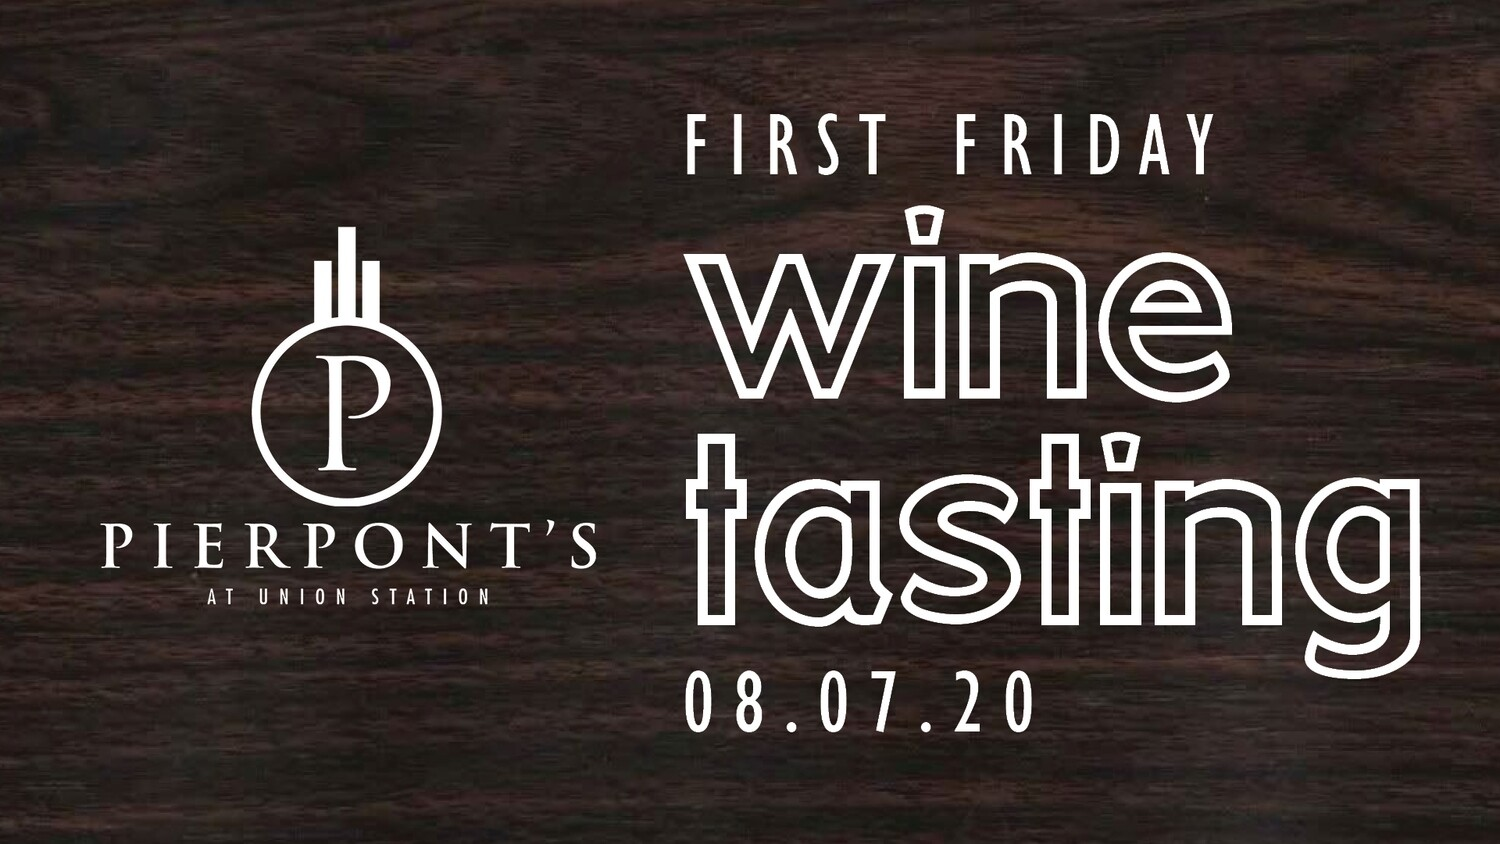 August First Friday Wine Tasting